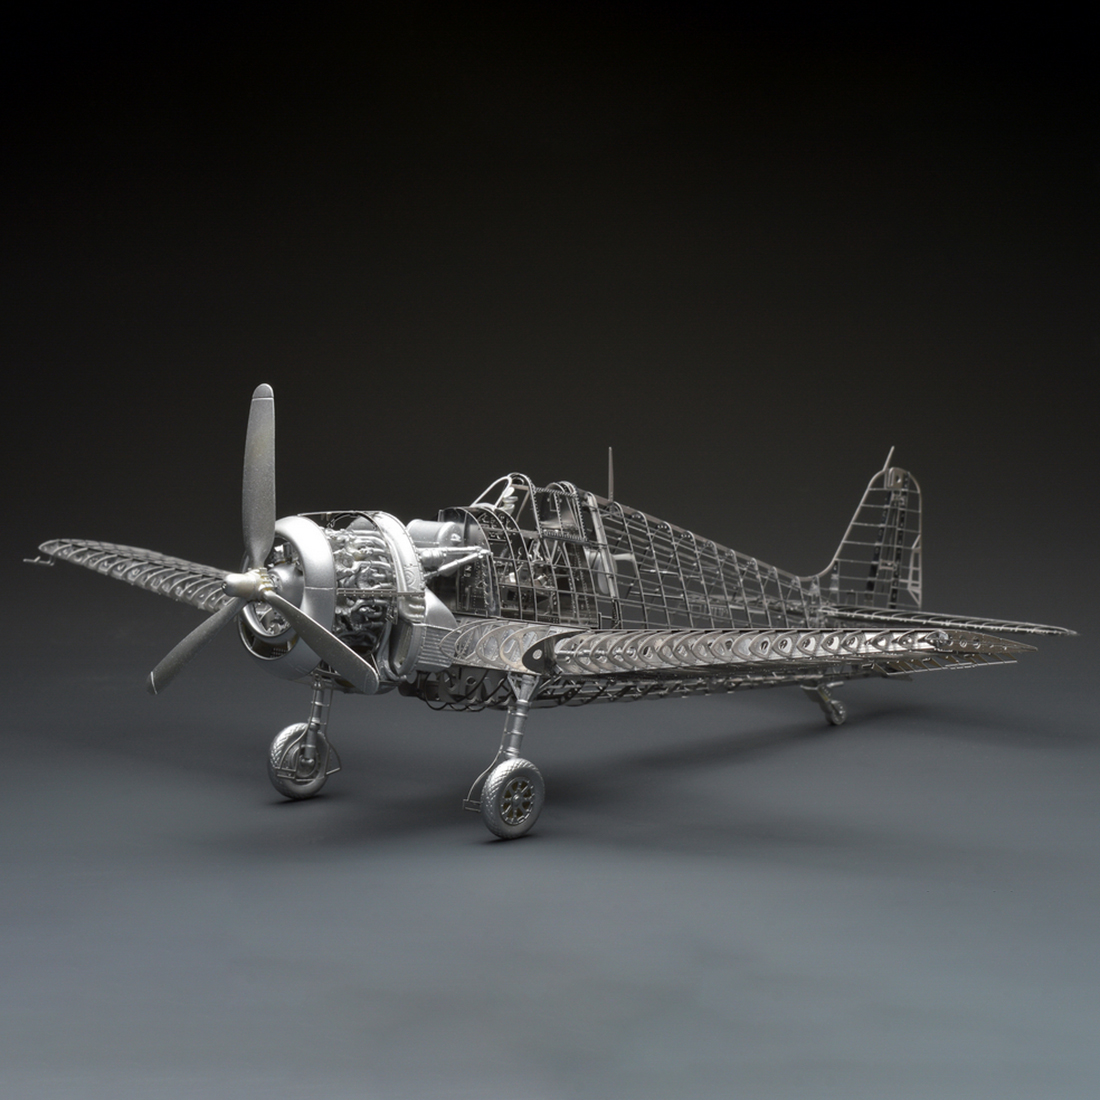 New <font><b>1/48</b></font> F6F-5 Aircraft Model Kit Retro Wing Movable Fighter Decoration 3D Metal Assembly Model image